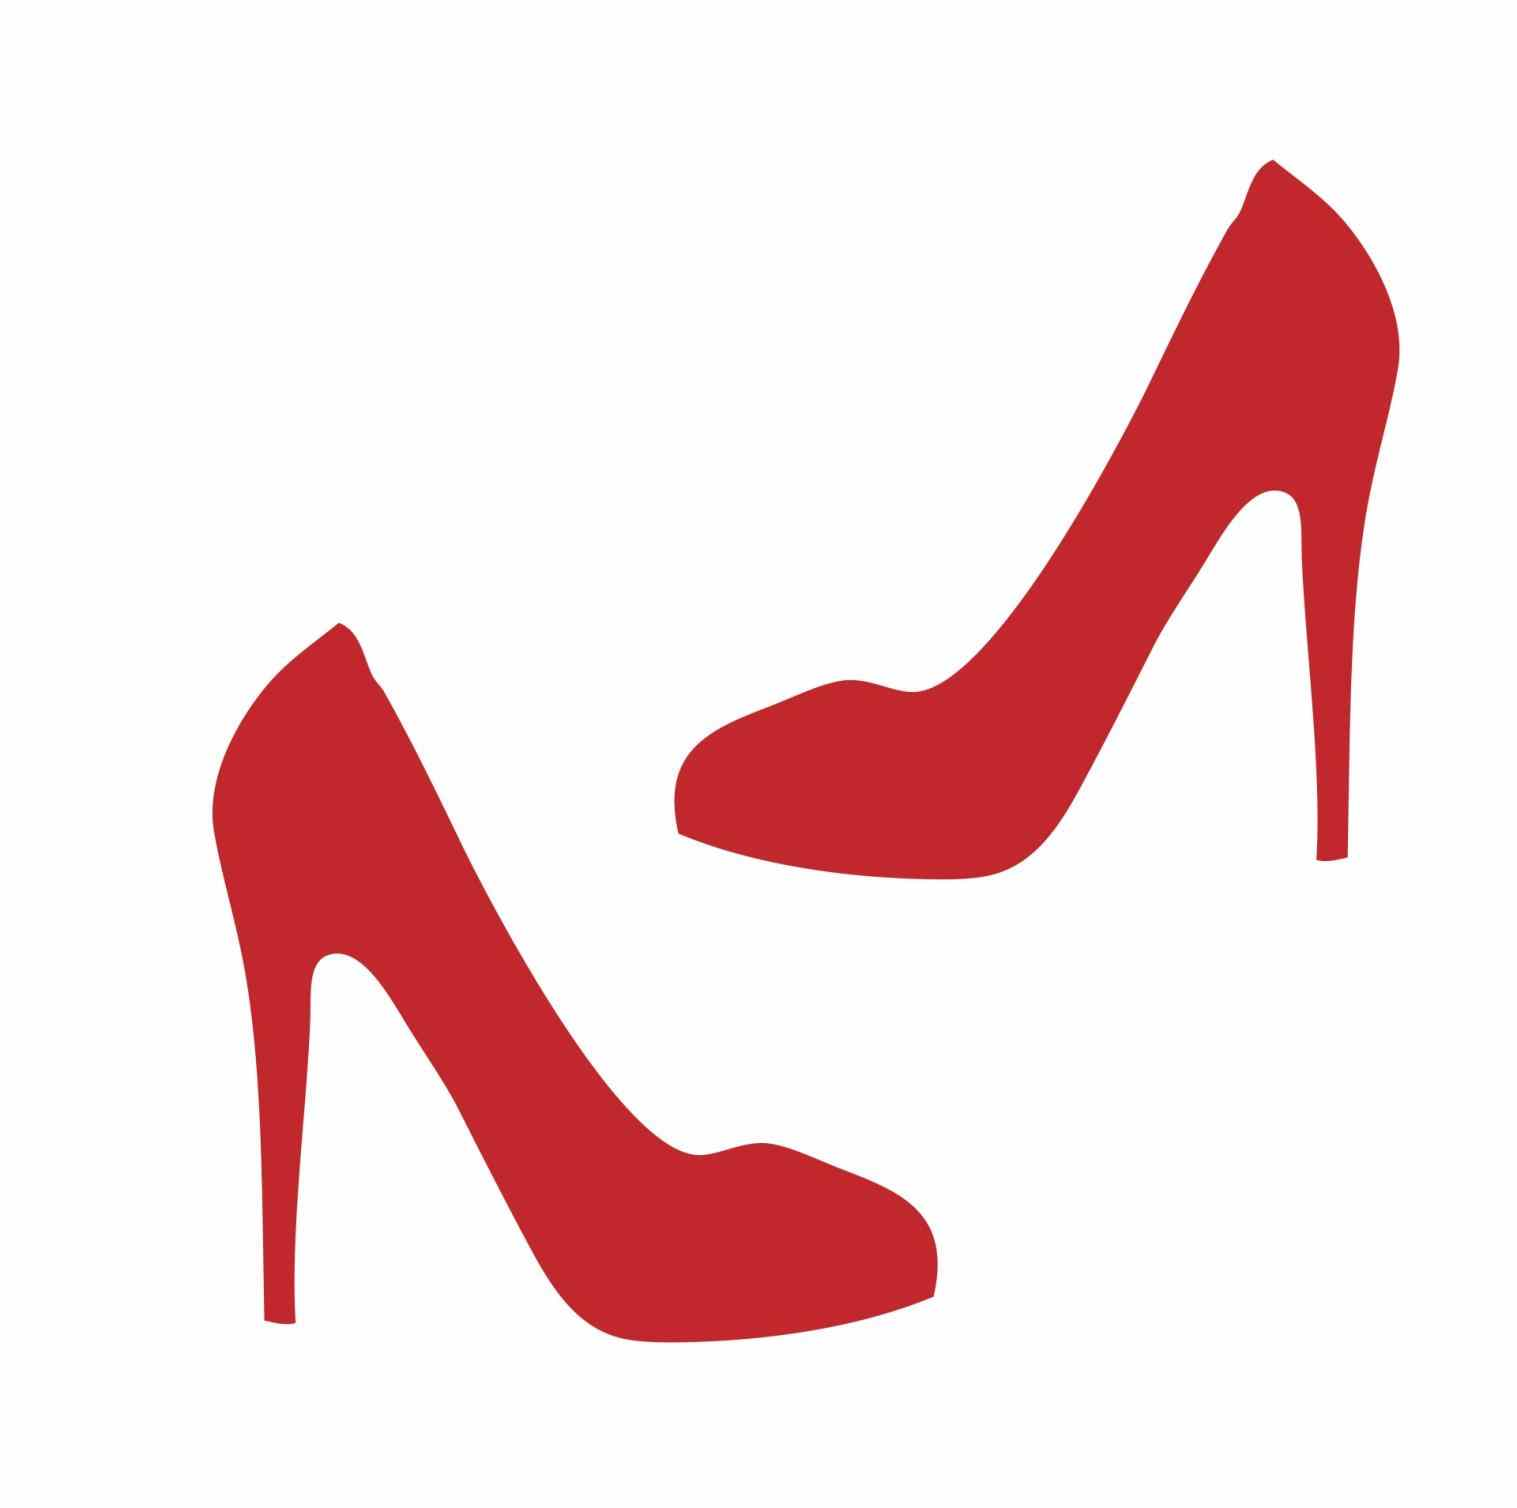 1517x1508 Shoe Icon Simple Illustration Stock Vector Shoe High Heel